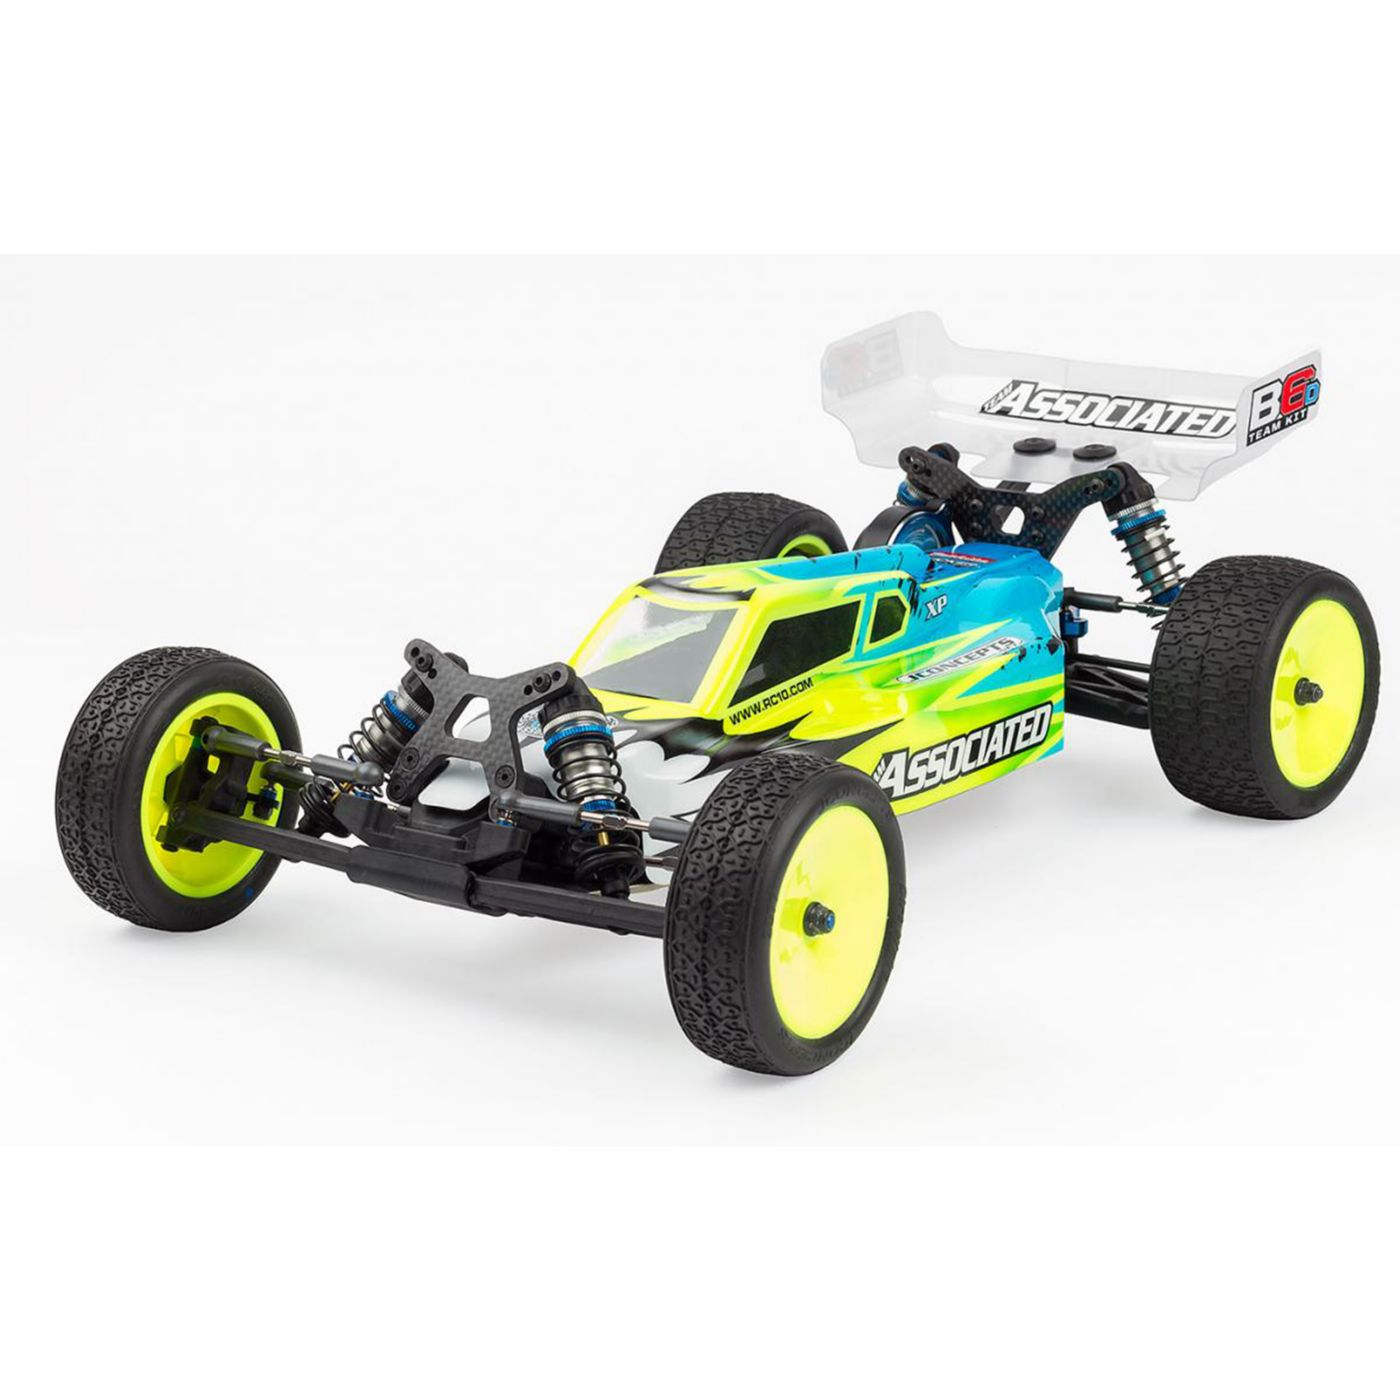 Rc newb discover the hobby of radio controlled cars trucks drones and more we offer reviews tips how tos and more on the r c hobby